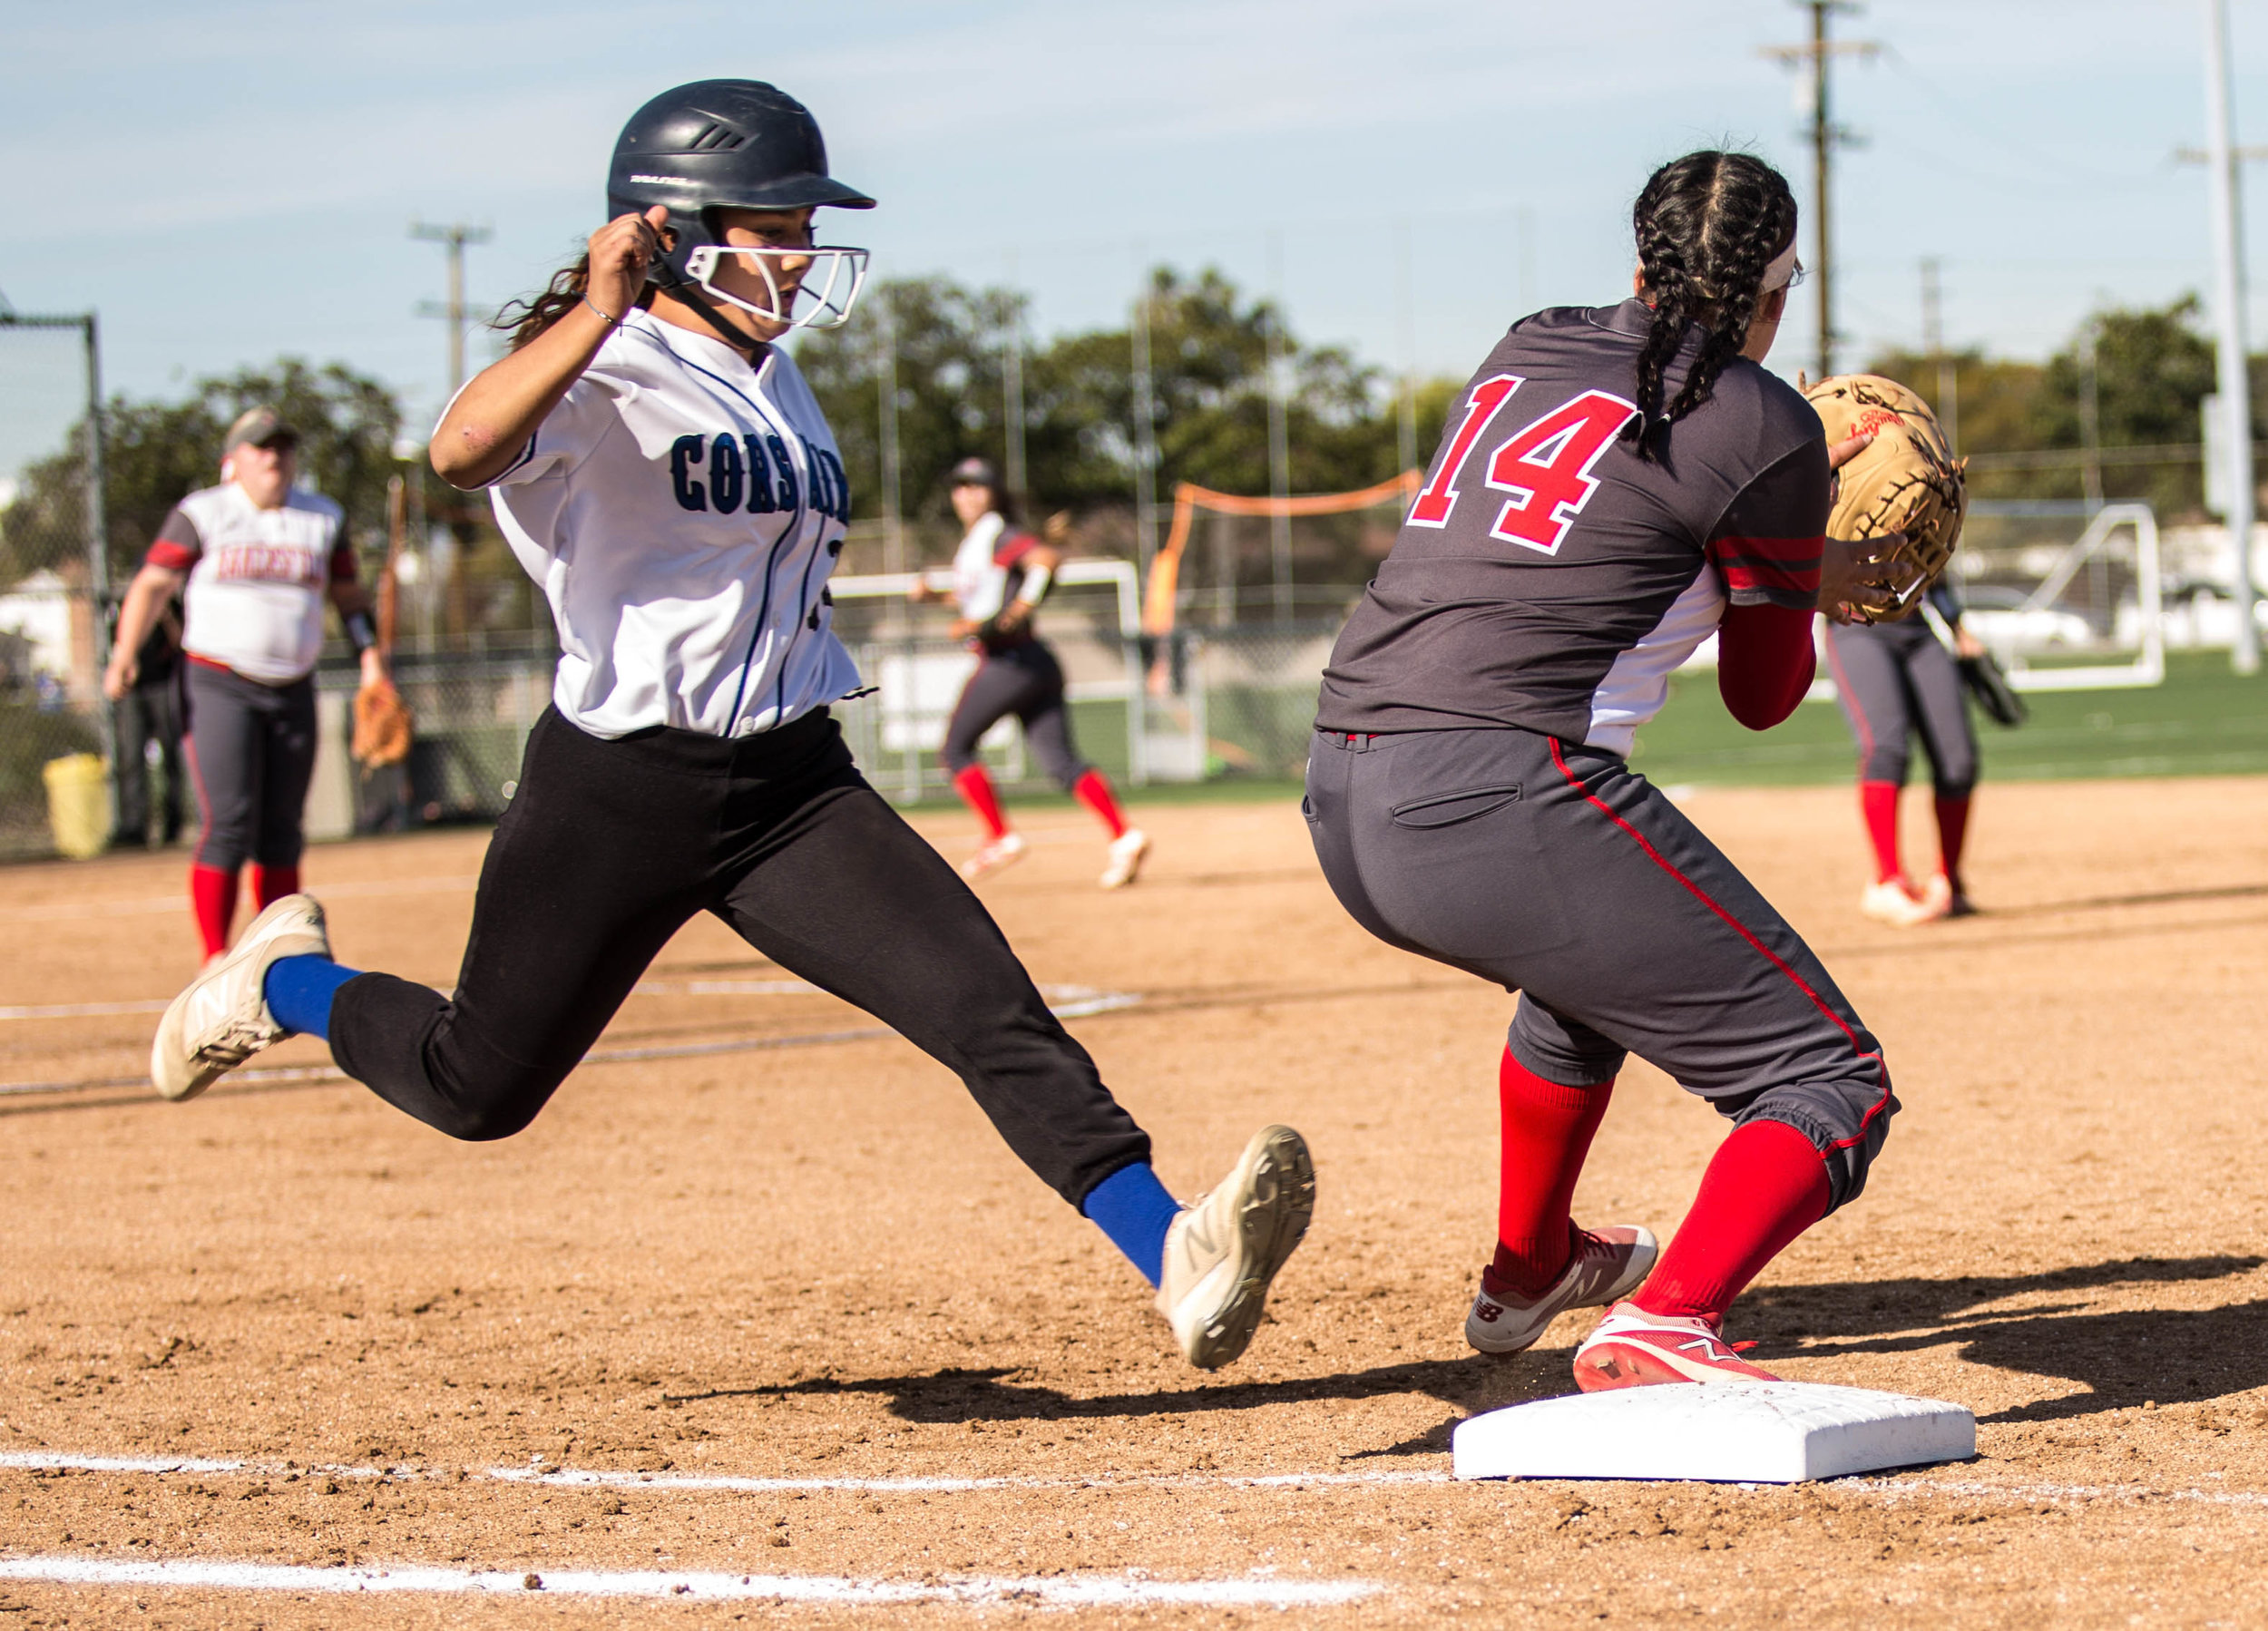 Santa Monica College Corsair freshman batter Jen Baca #14 (left, white) successfully takes first base as Bakersfield College Renegade sophomore infielder Aryka Chavez #14 (right, red) fails to tag Baca, who is declared safe, during the top of the 5th inning at the Santa Monica College Corsair Field in Santa Monica California, on Tuesday, March 6, 2018. The Corsairs would go on to lose the game to Bakersfield College 0 – 9, making their tally for the season 6 wins and 11 losses. (Corsair Photo: Matthew Martin)